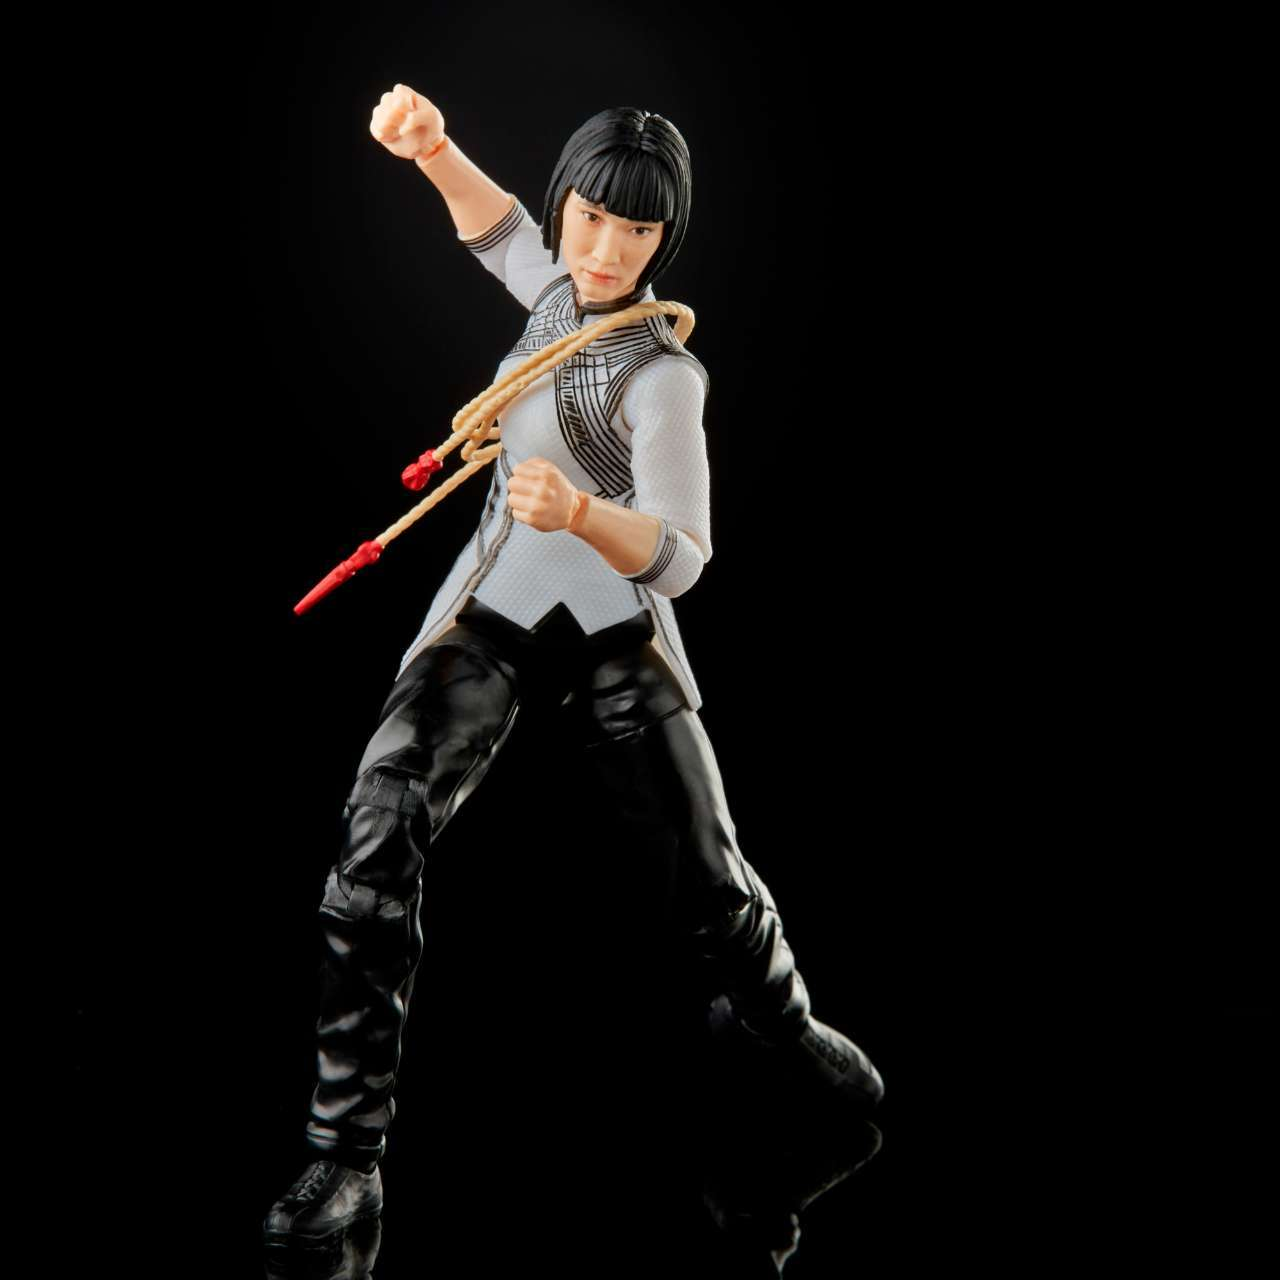 MARVEL LEGENDS SERIES 6-INCH SHANG-CHI AND THE LEGEND OF THE TEN RINGS - Xialing oop4